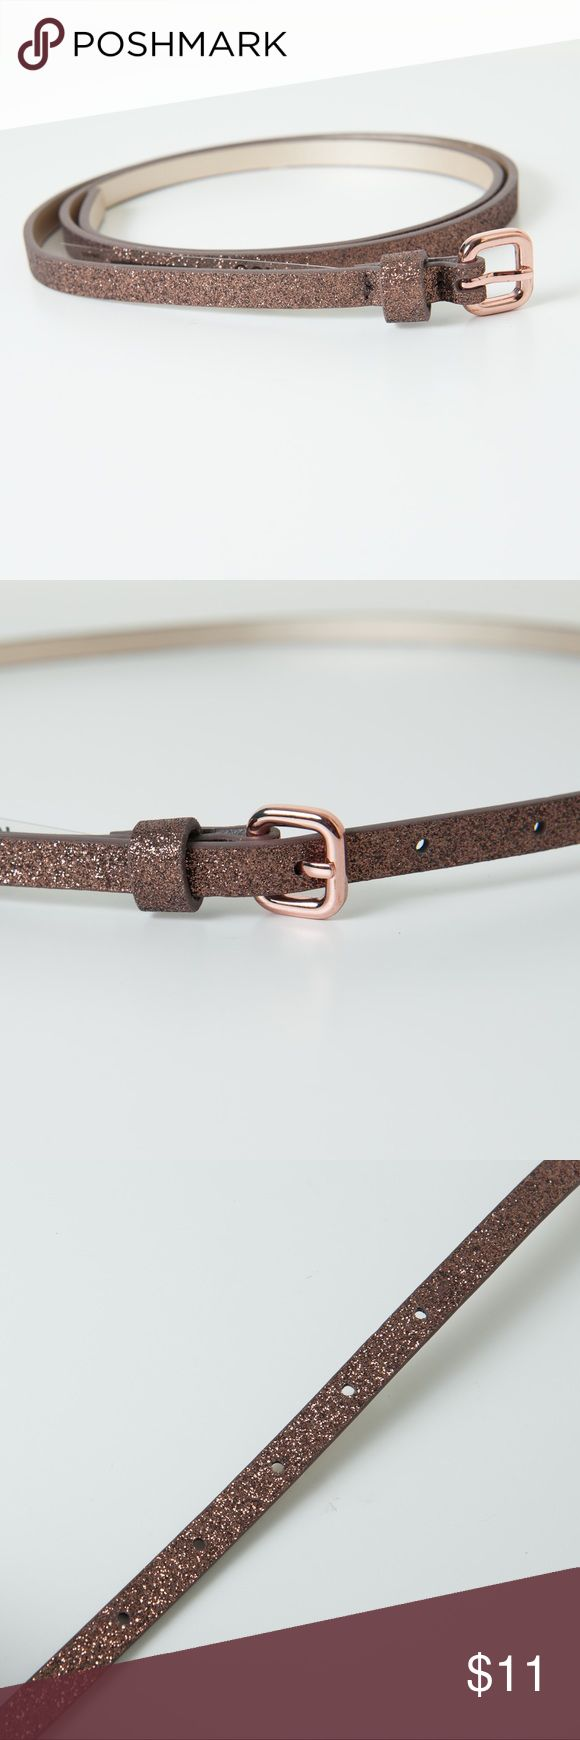 Joe Fresh Glitter Skinny Belt NWOT Bronze Gold Bronze/Gold glitter belt from Joe Fresh. New without tags. Get your daily dose of glamour with a glittery belt. Faux leather with glitter, 100% polyurthane Joe Fresh Accessories Belts